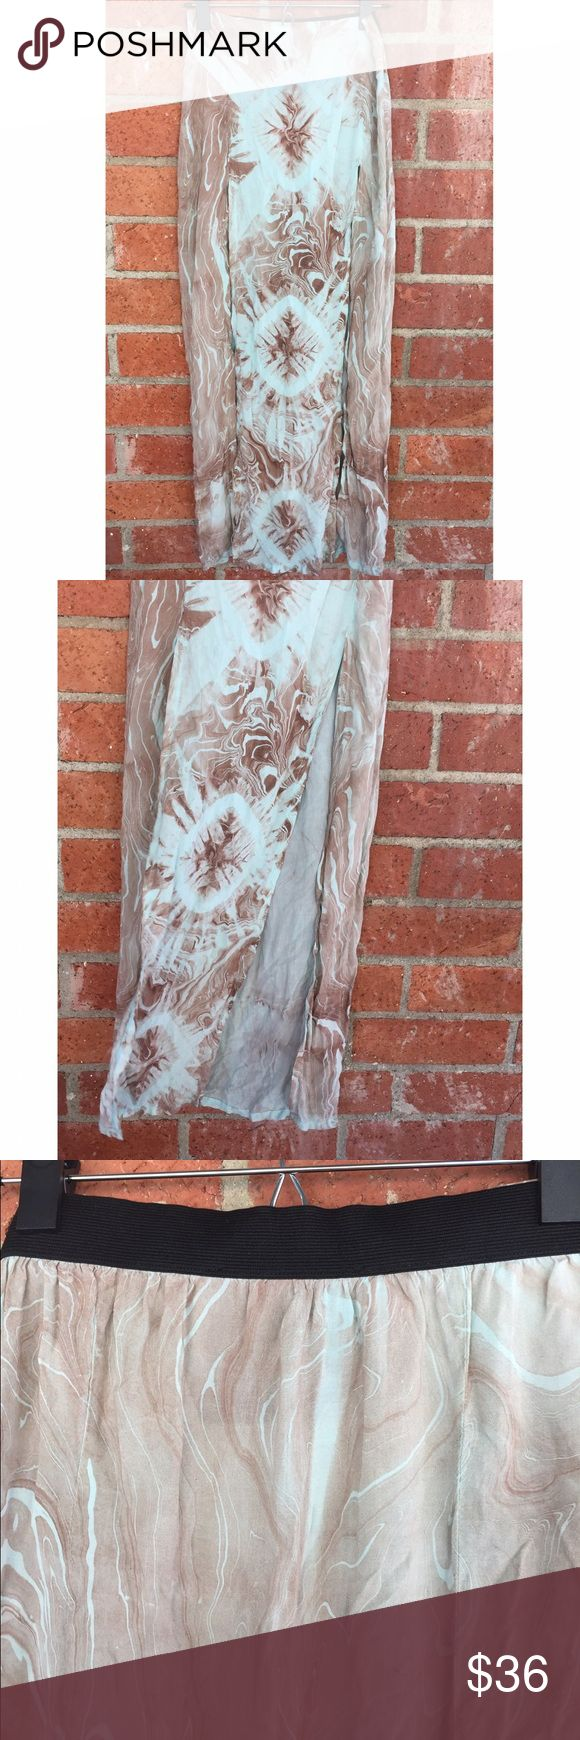 Blu Life Planet Blue 2 Slit Maxi Skirt Beautiful mint/tan marble design with two slits down the front. Some stretching on the elastic band but besides that in excellent condition! Offers considered Blue Life Skirts Maxi